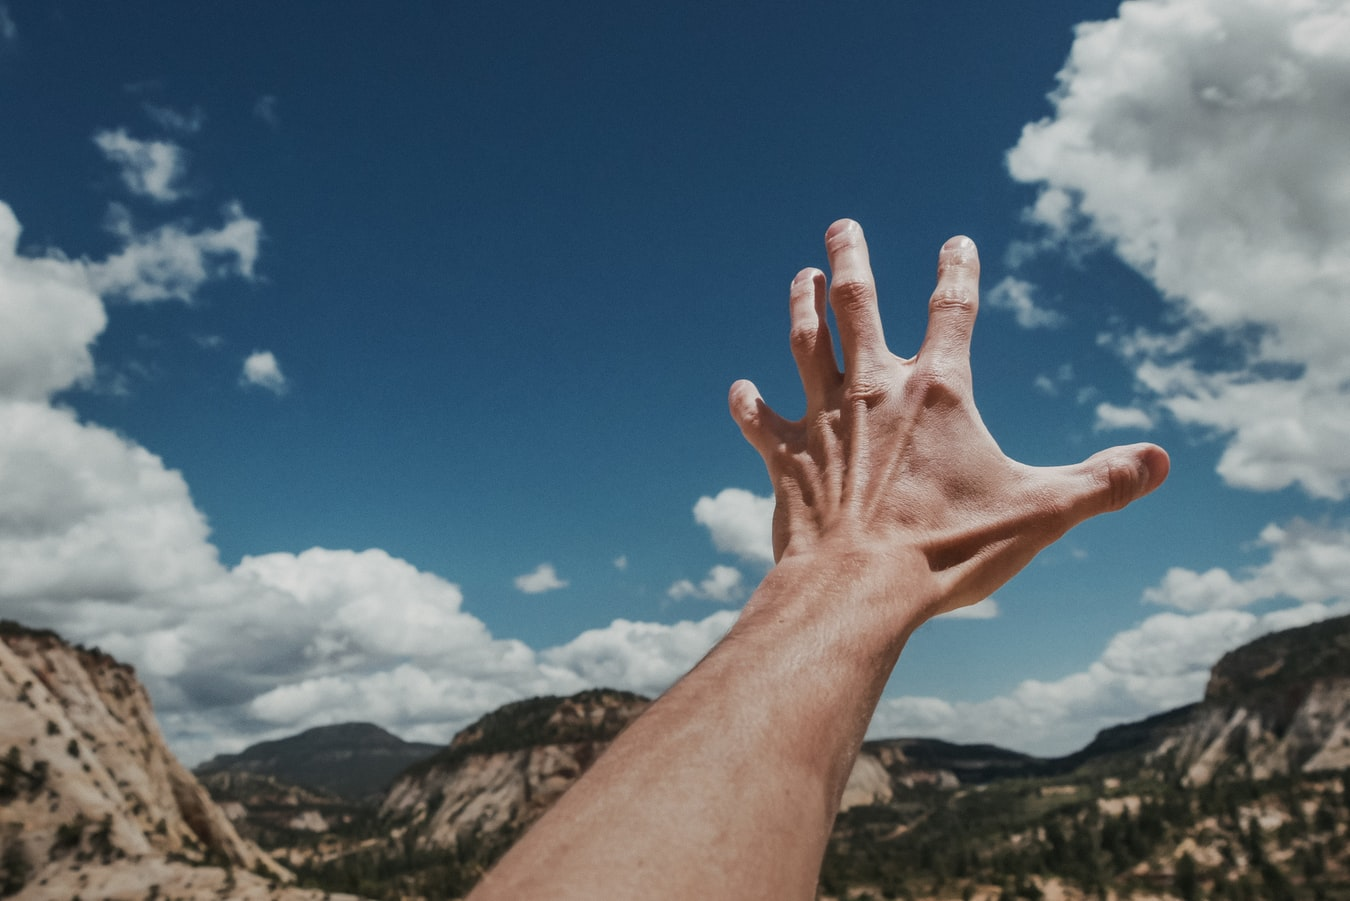 Hand reaching out to the sky Photo by Nik Shuliahin on Unsplash